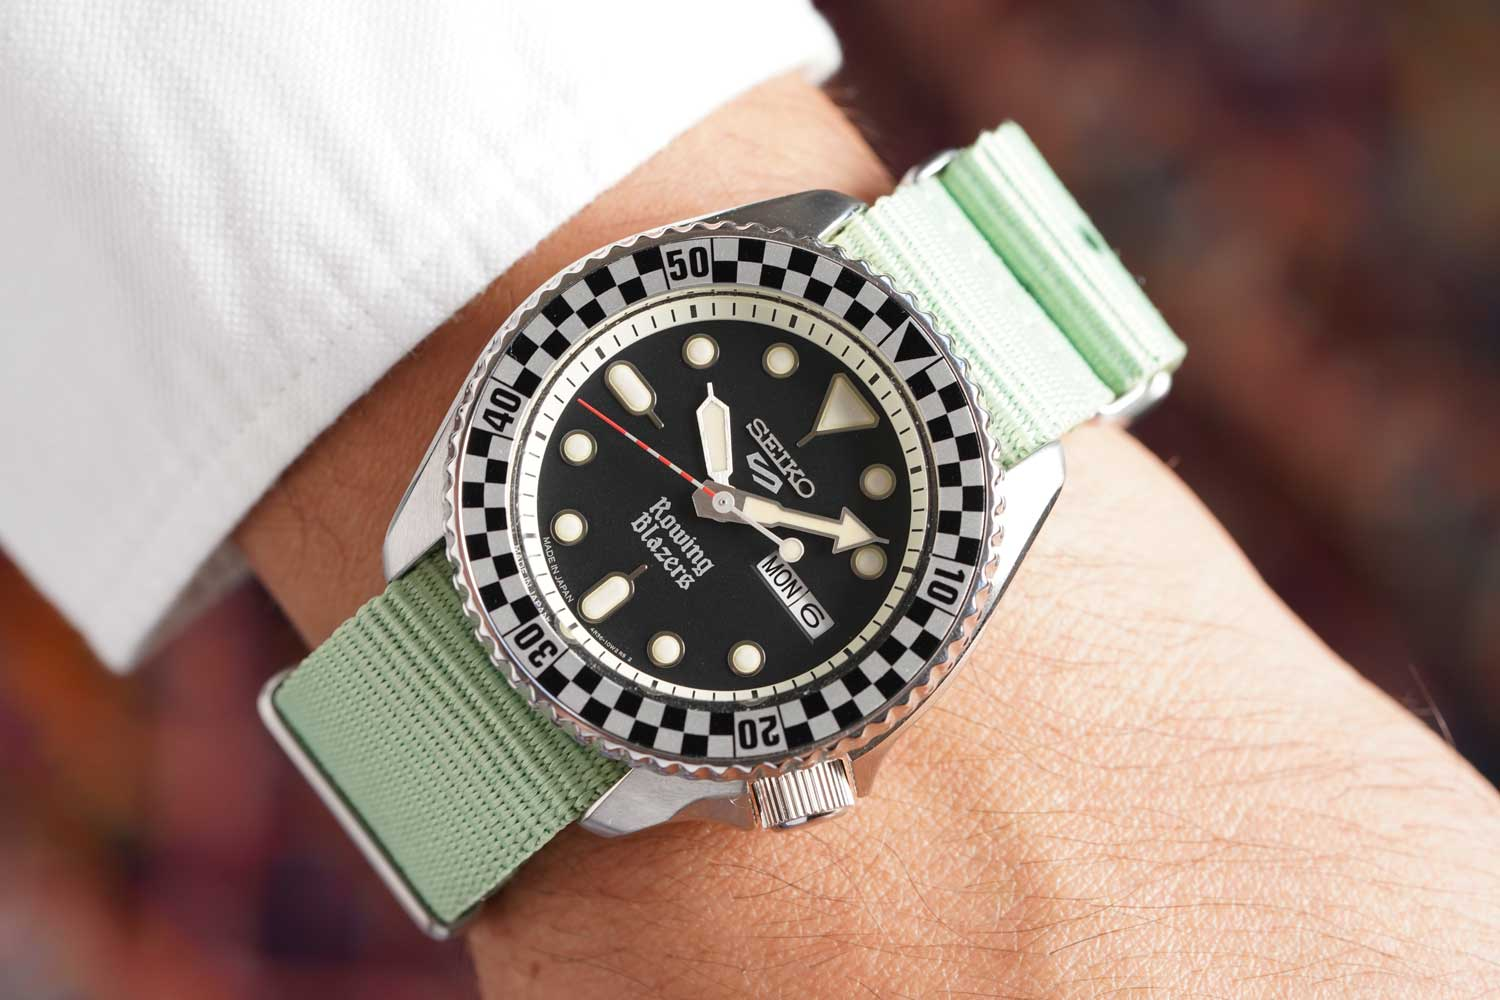 The Rally Diver model is designed to appease vintage watch enthusiasts